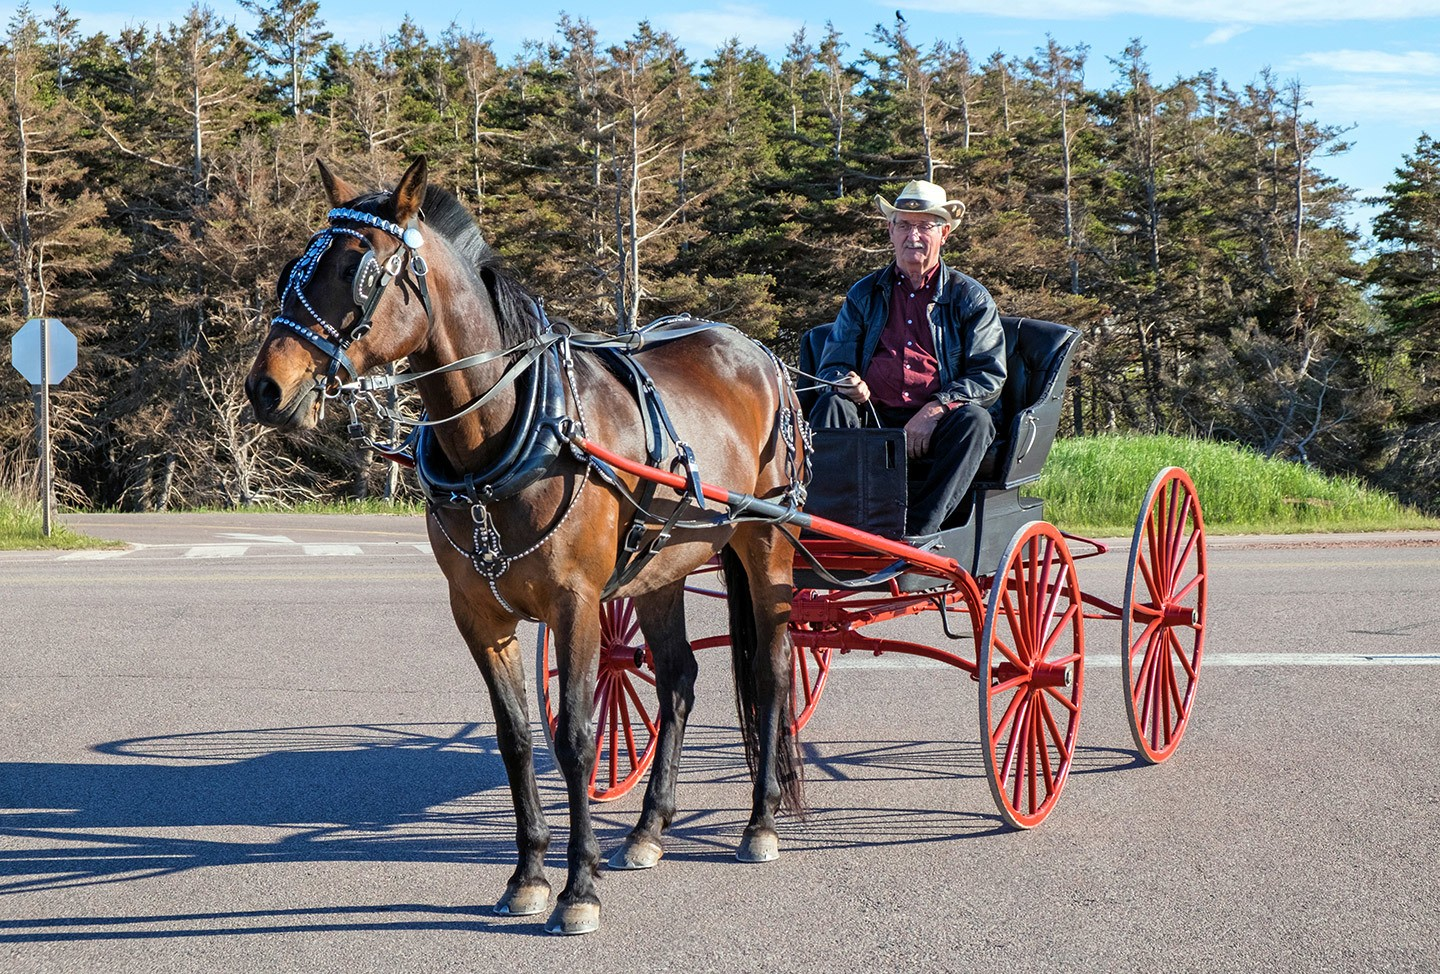 Horse and buggy, Prince Edward Island, Canada